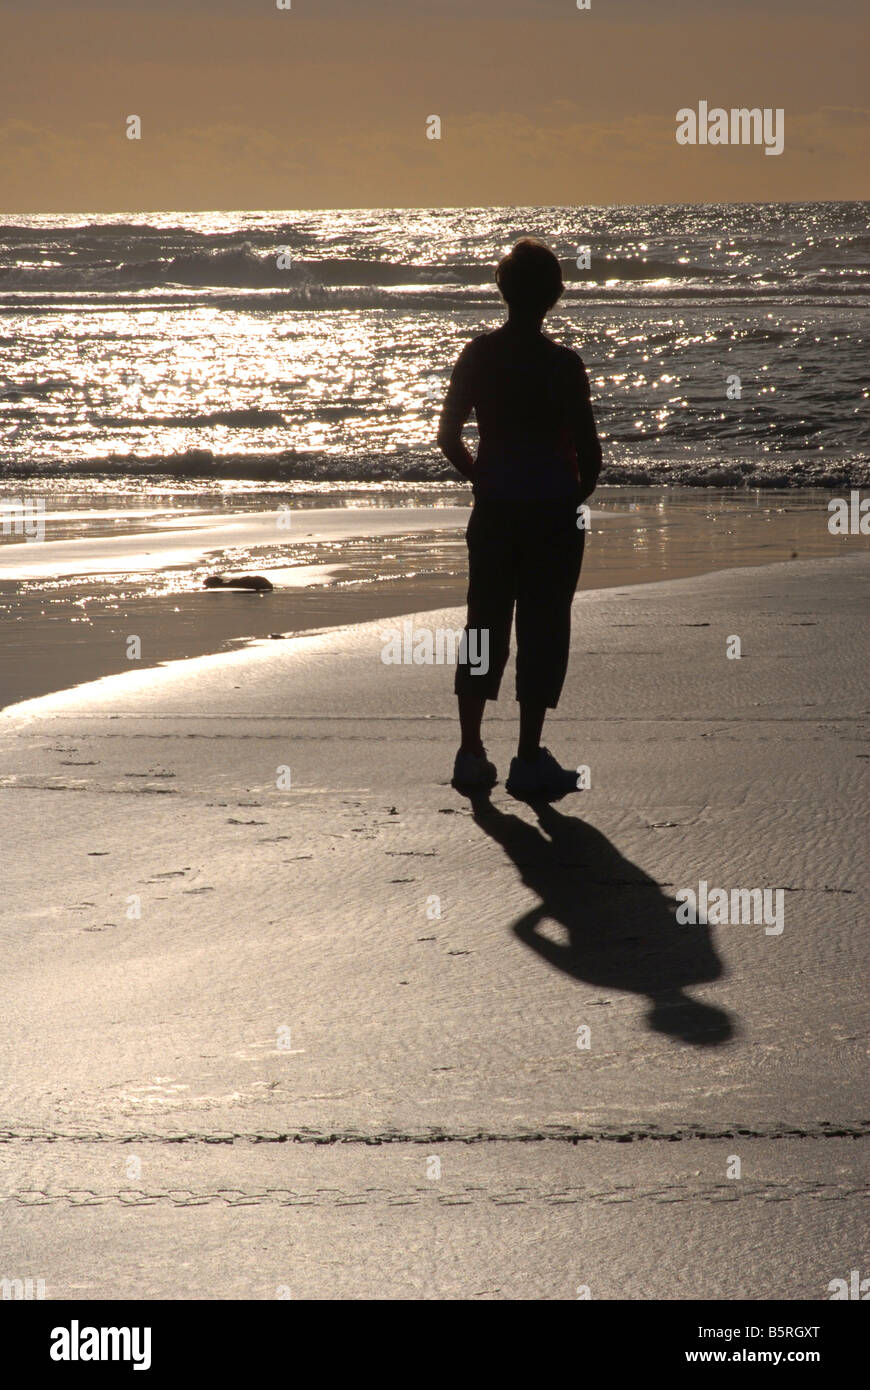 Silhouetted shape of a woman walking along a sandy shore. Grey mouth. New Zealand - Stock Image